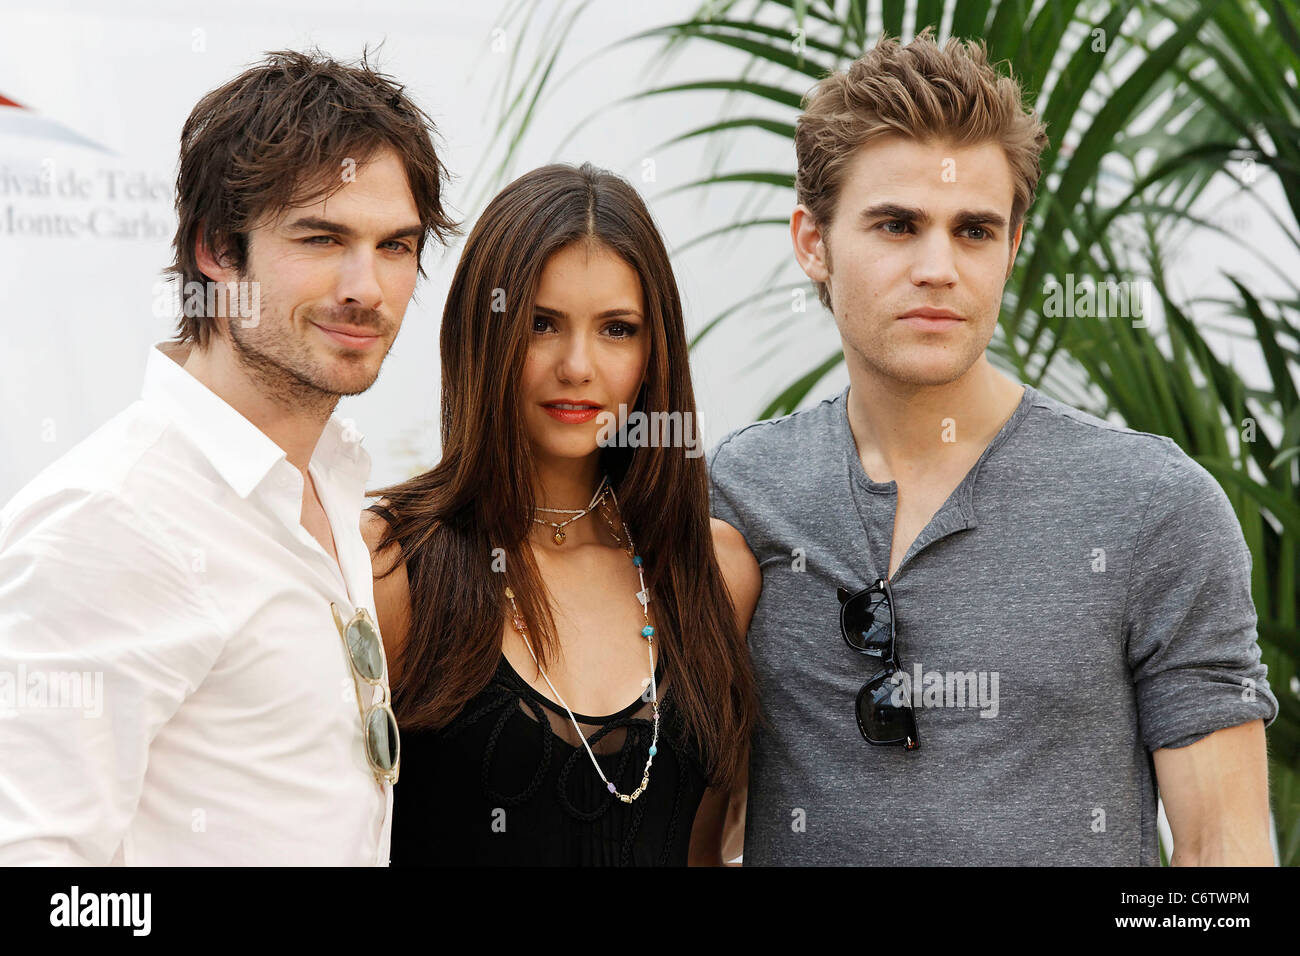 Are nina and paul dating